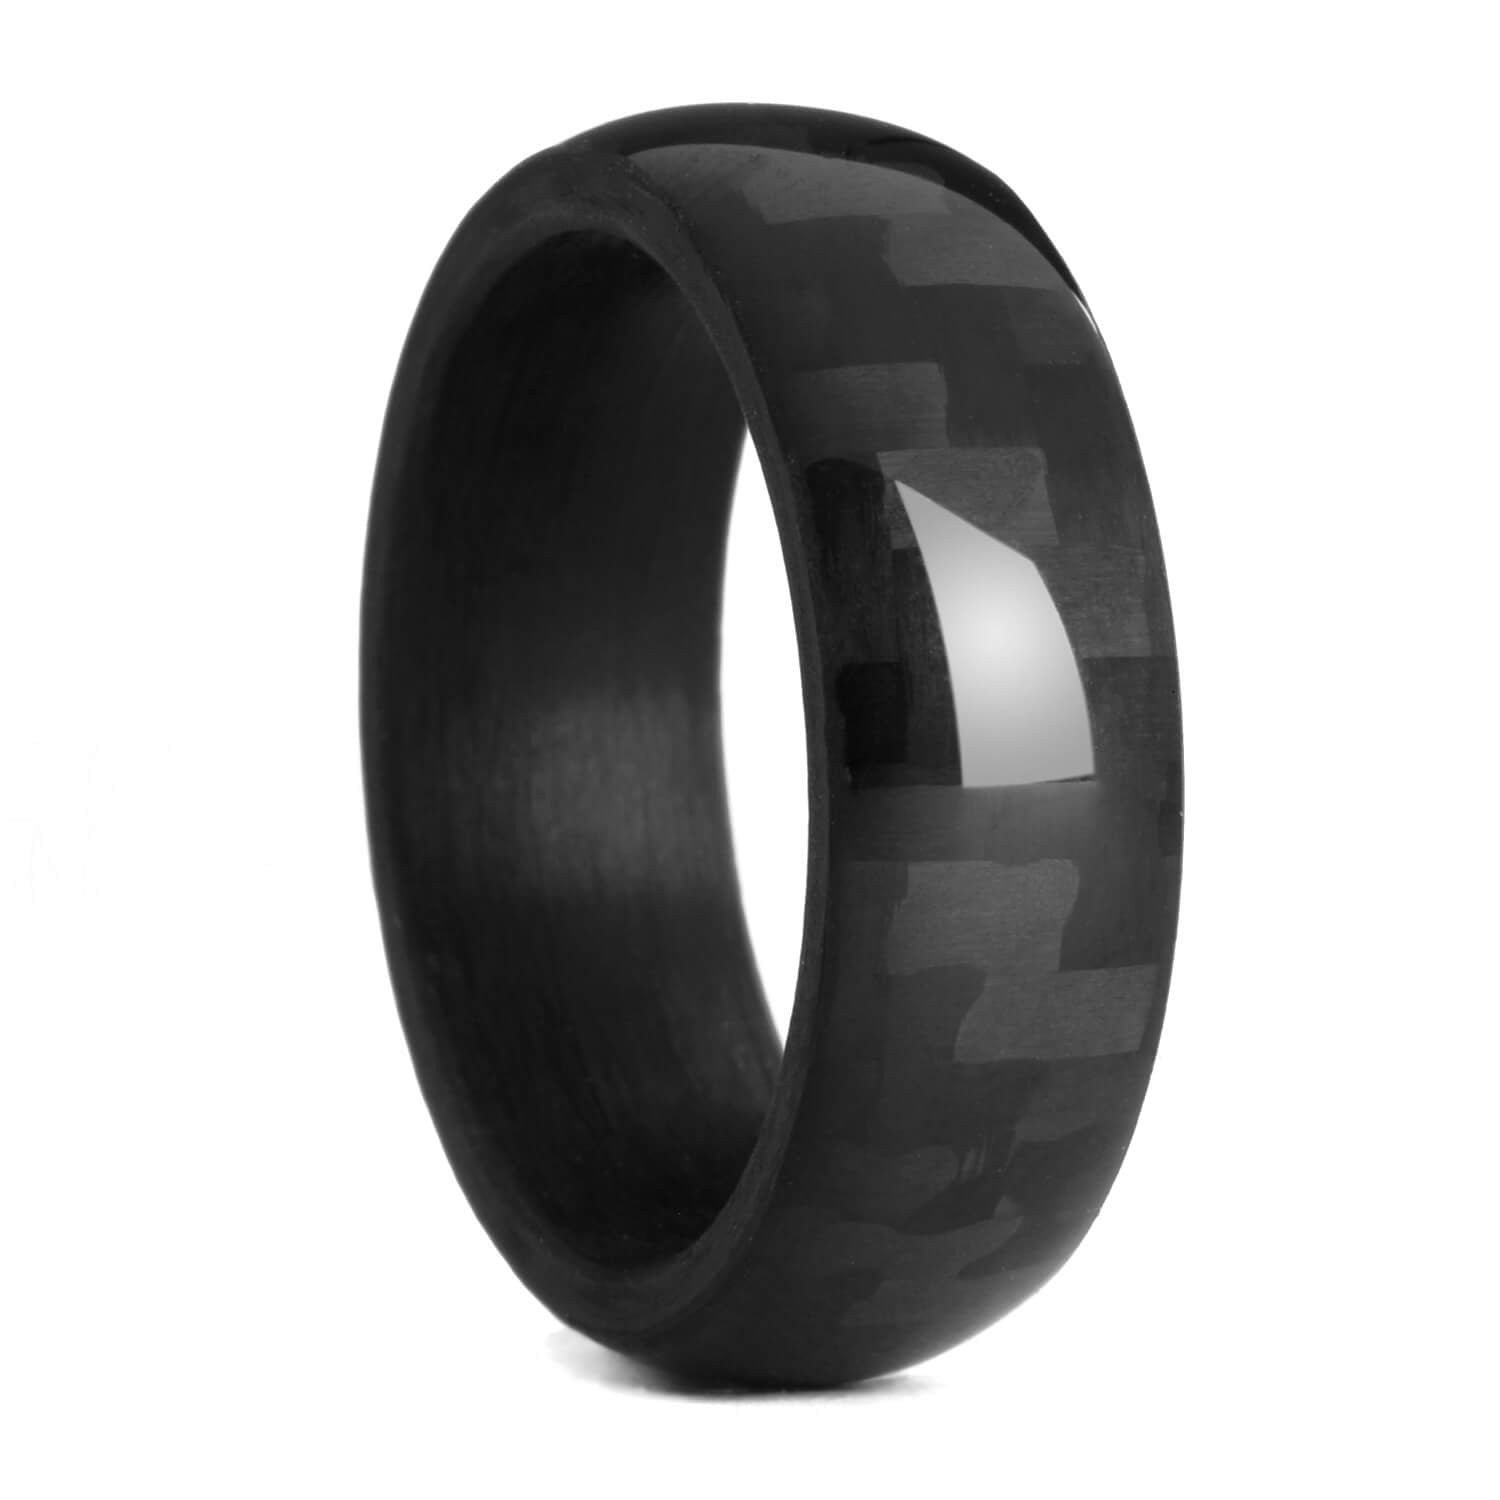 blue ring wedding fiber black carbon band tungsten rings itm atop men jewelry s and